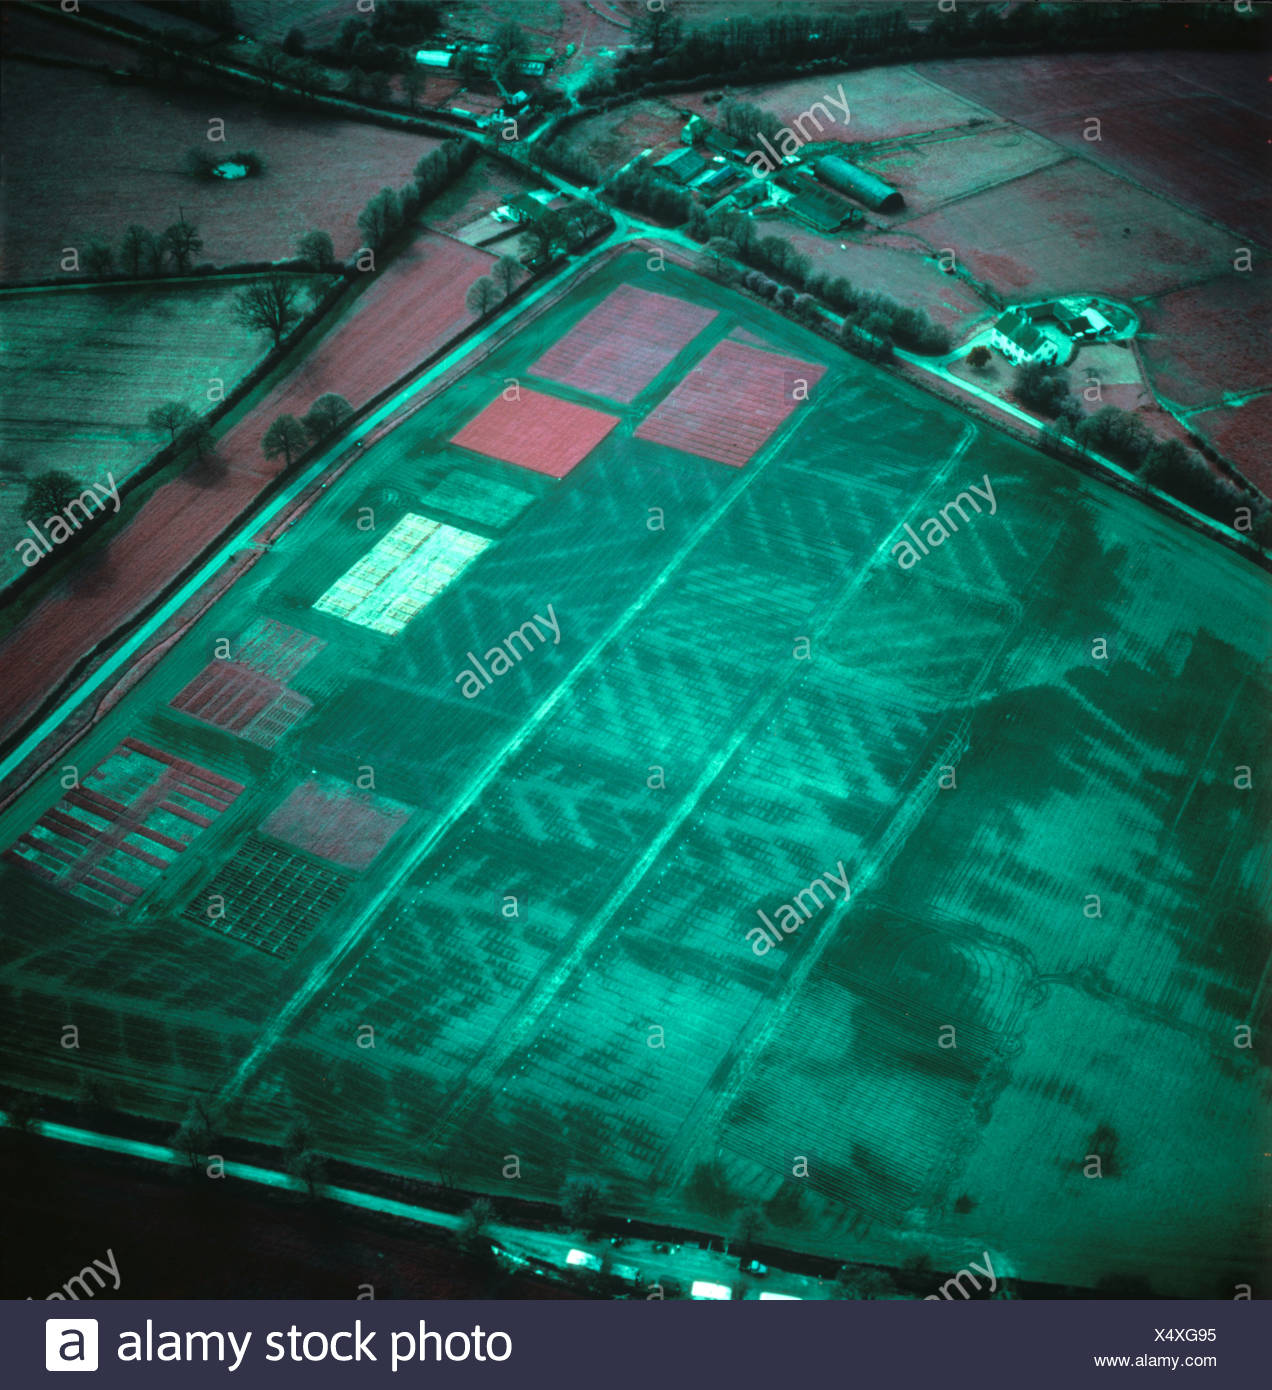 False colour infrared aerial image of a mainly fallow field showing its drainage pattern - Stock Image